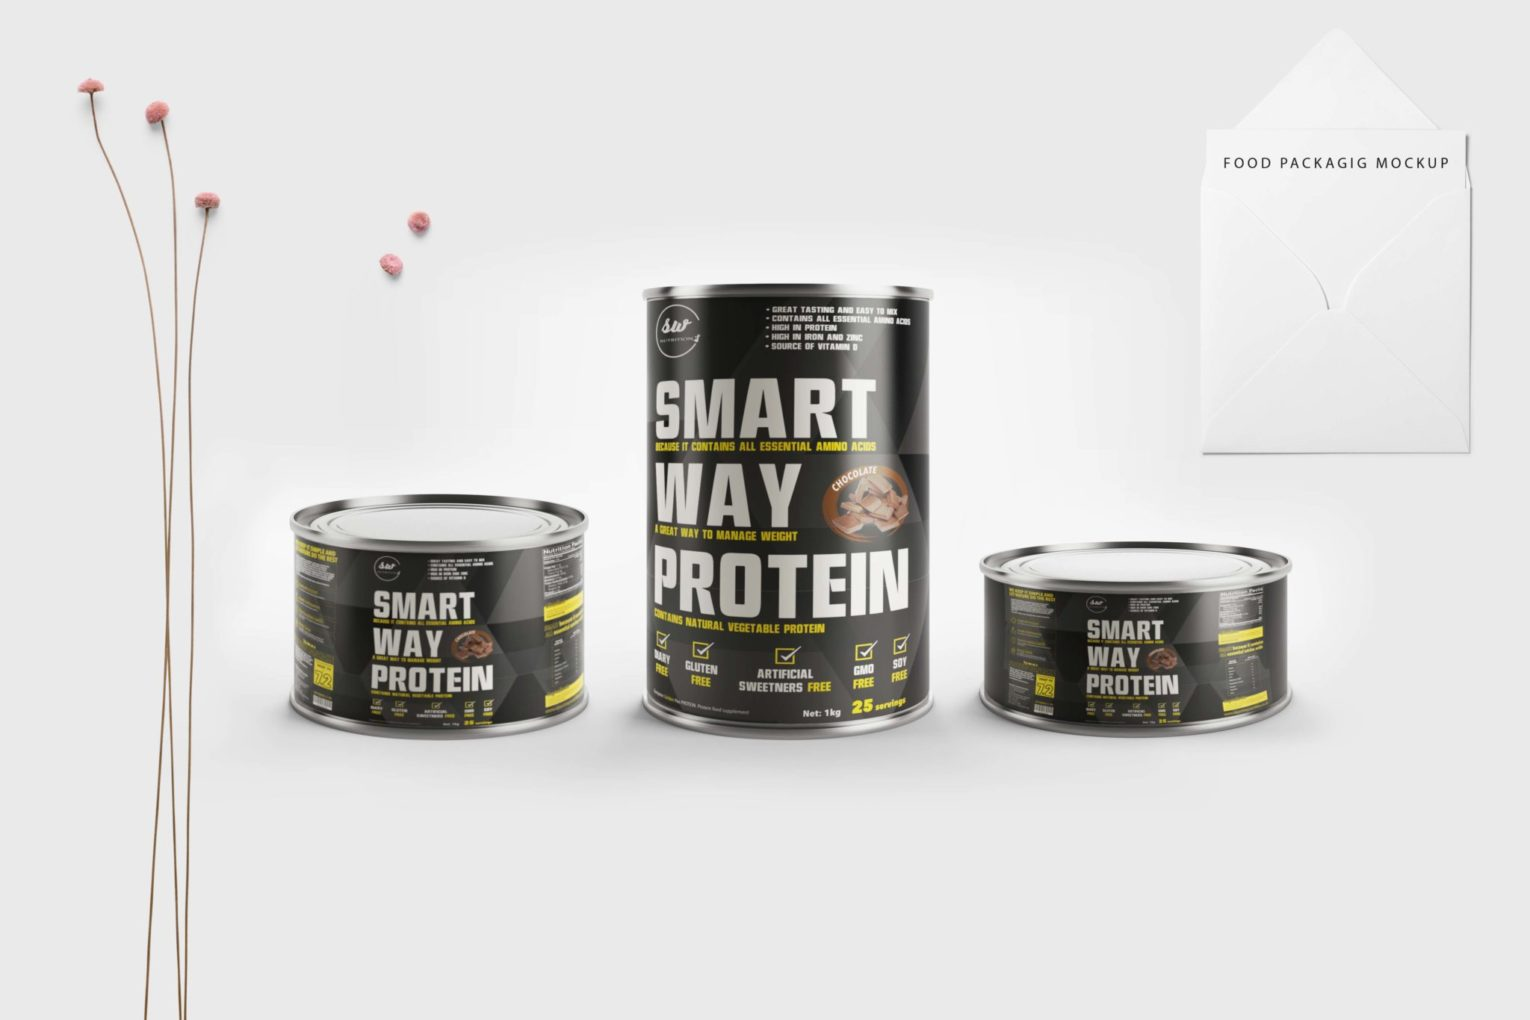 Smart Way Protein Supplement Packaging Mockup